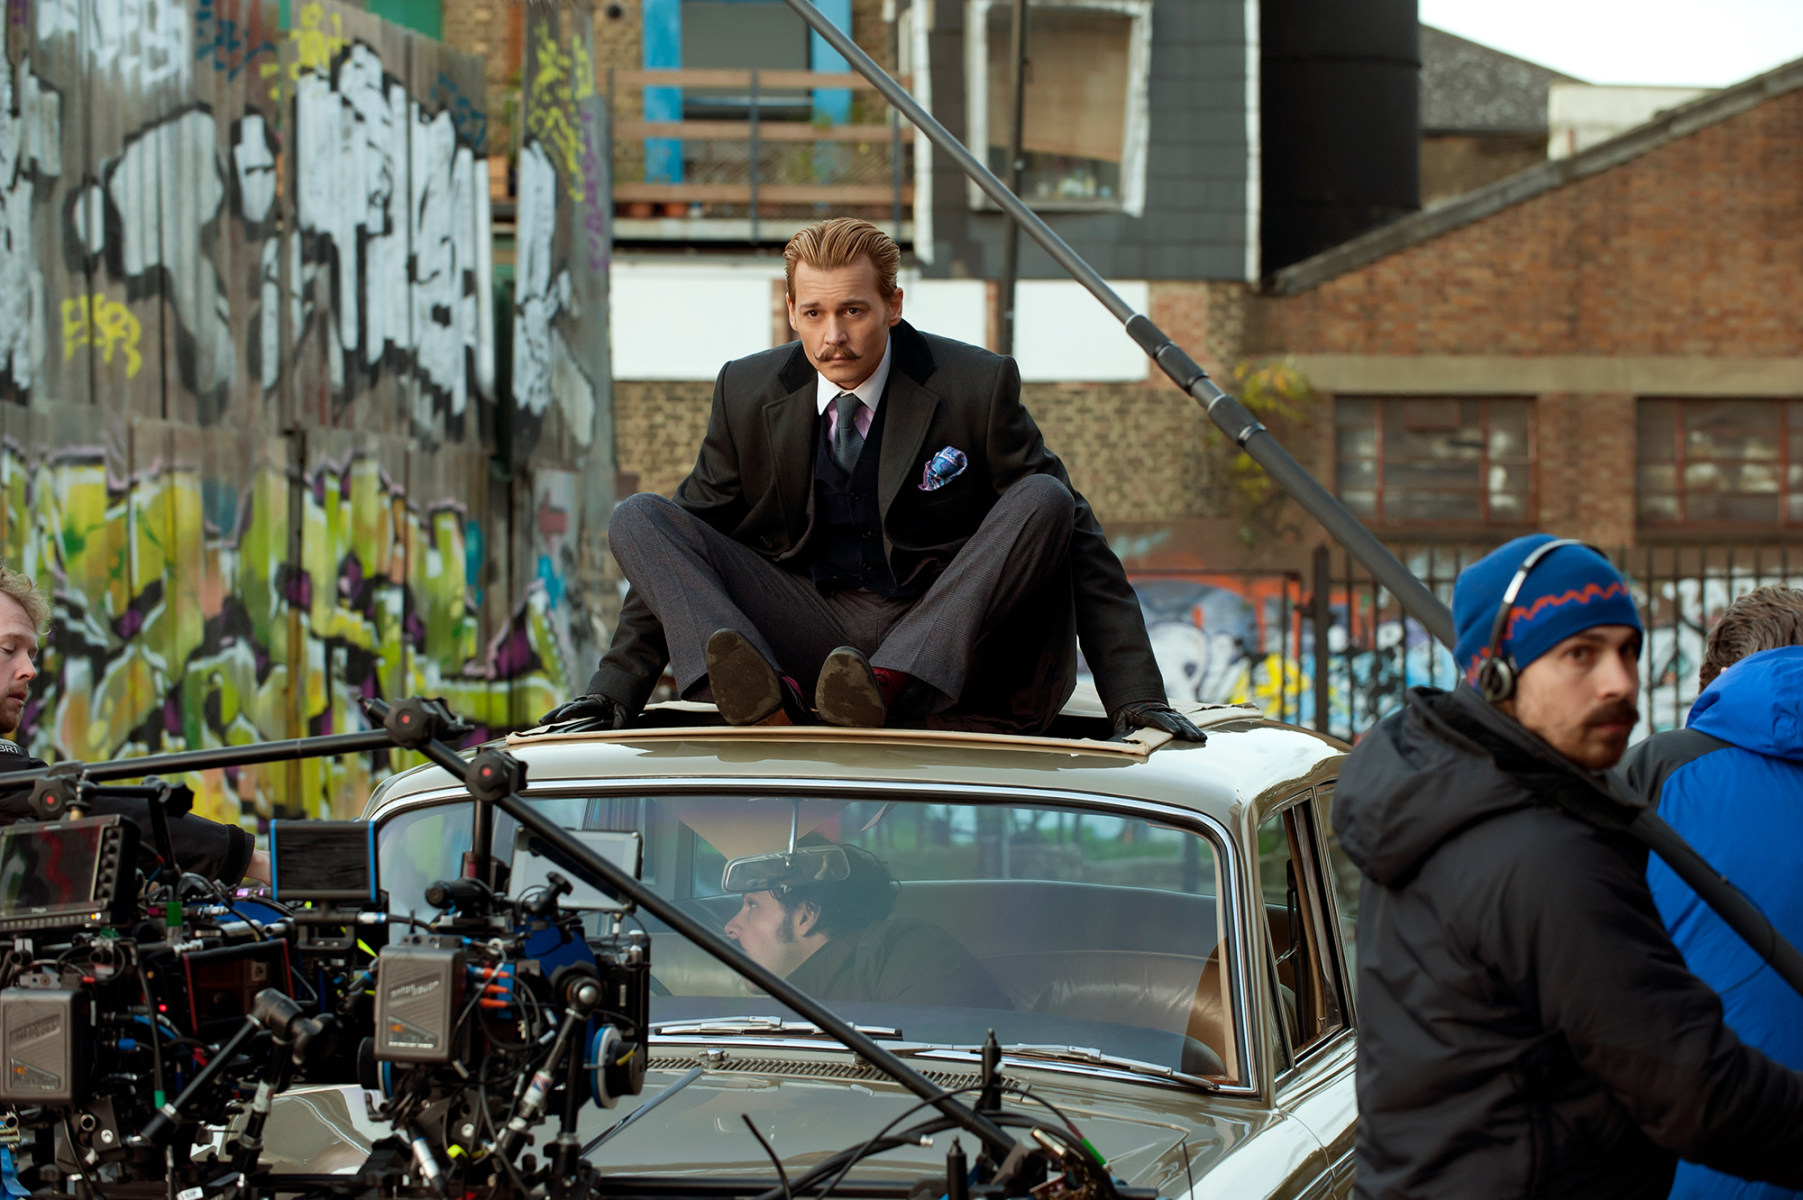 Filming Mortdecai (2015) Behind the Scenes